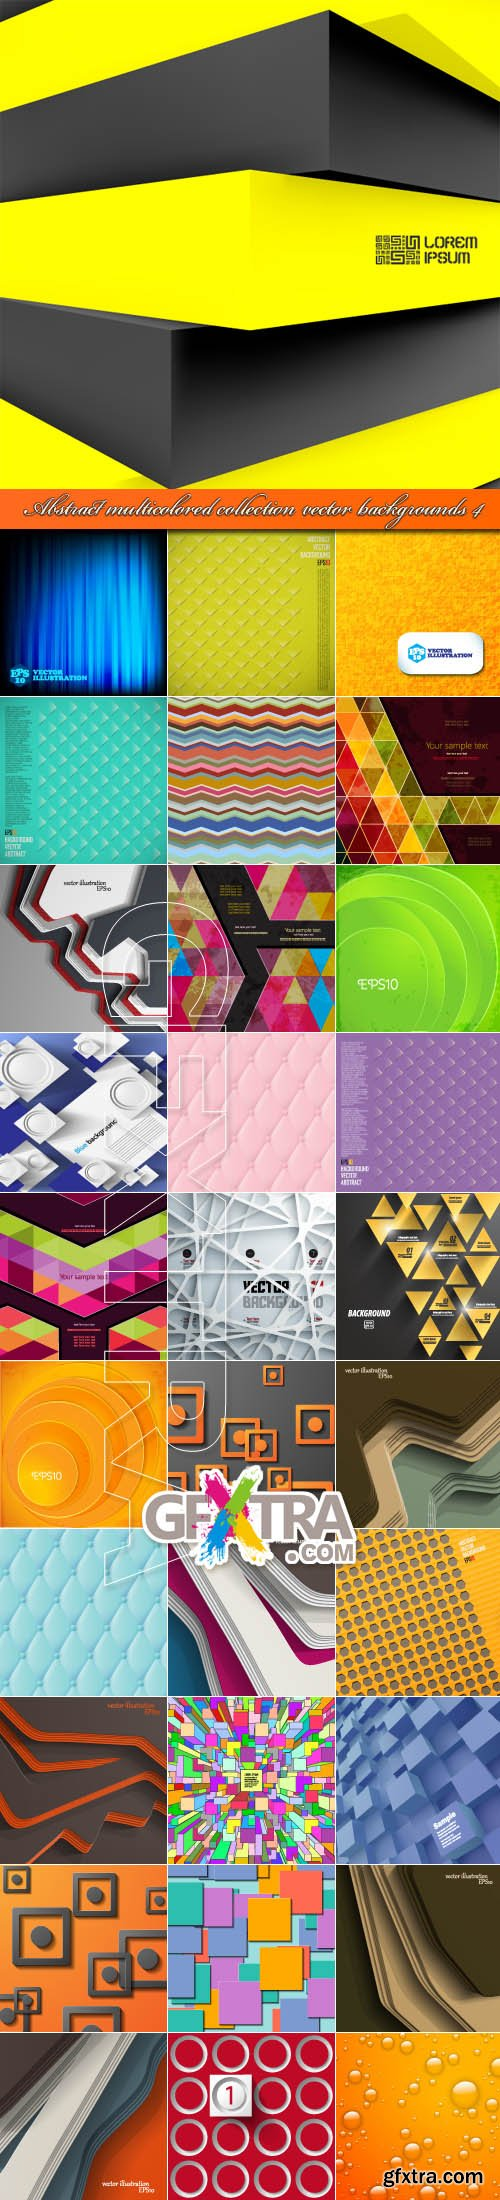 Abstract multicolored collection vector backgrounds 4